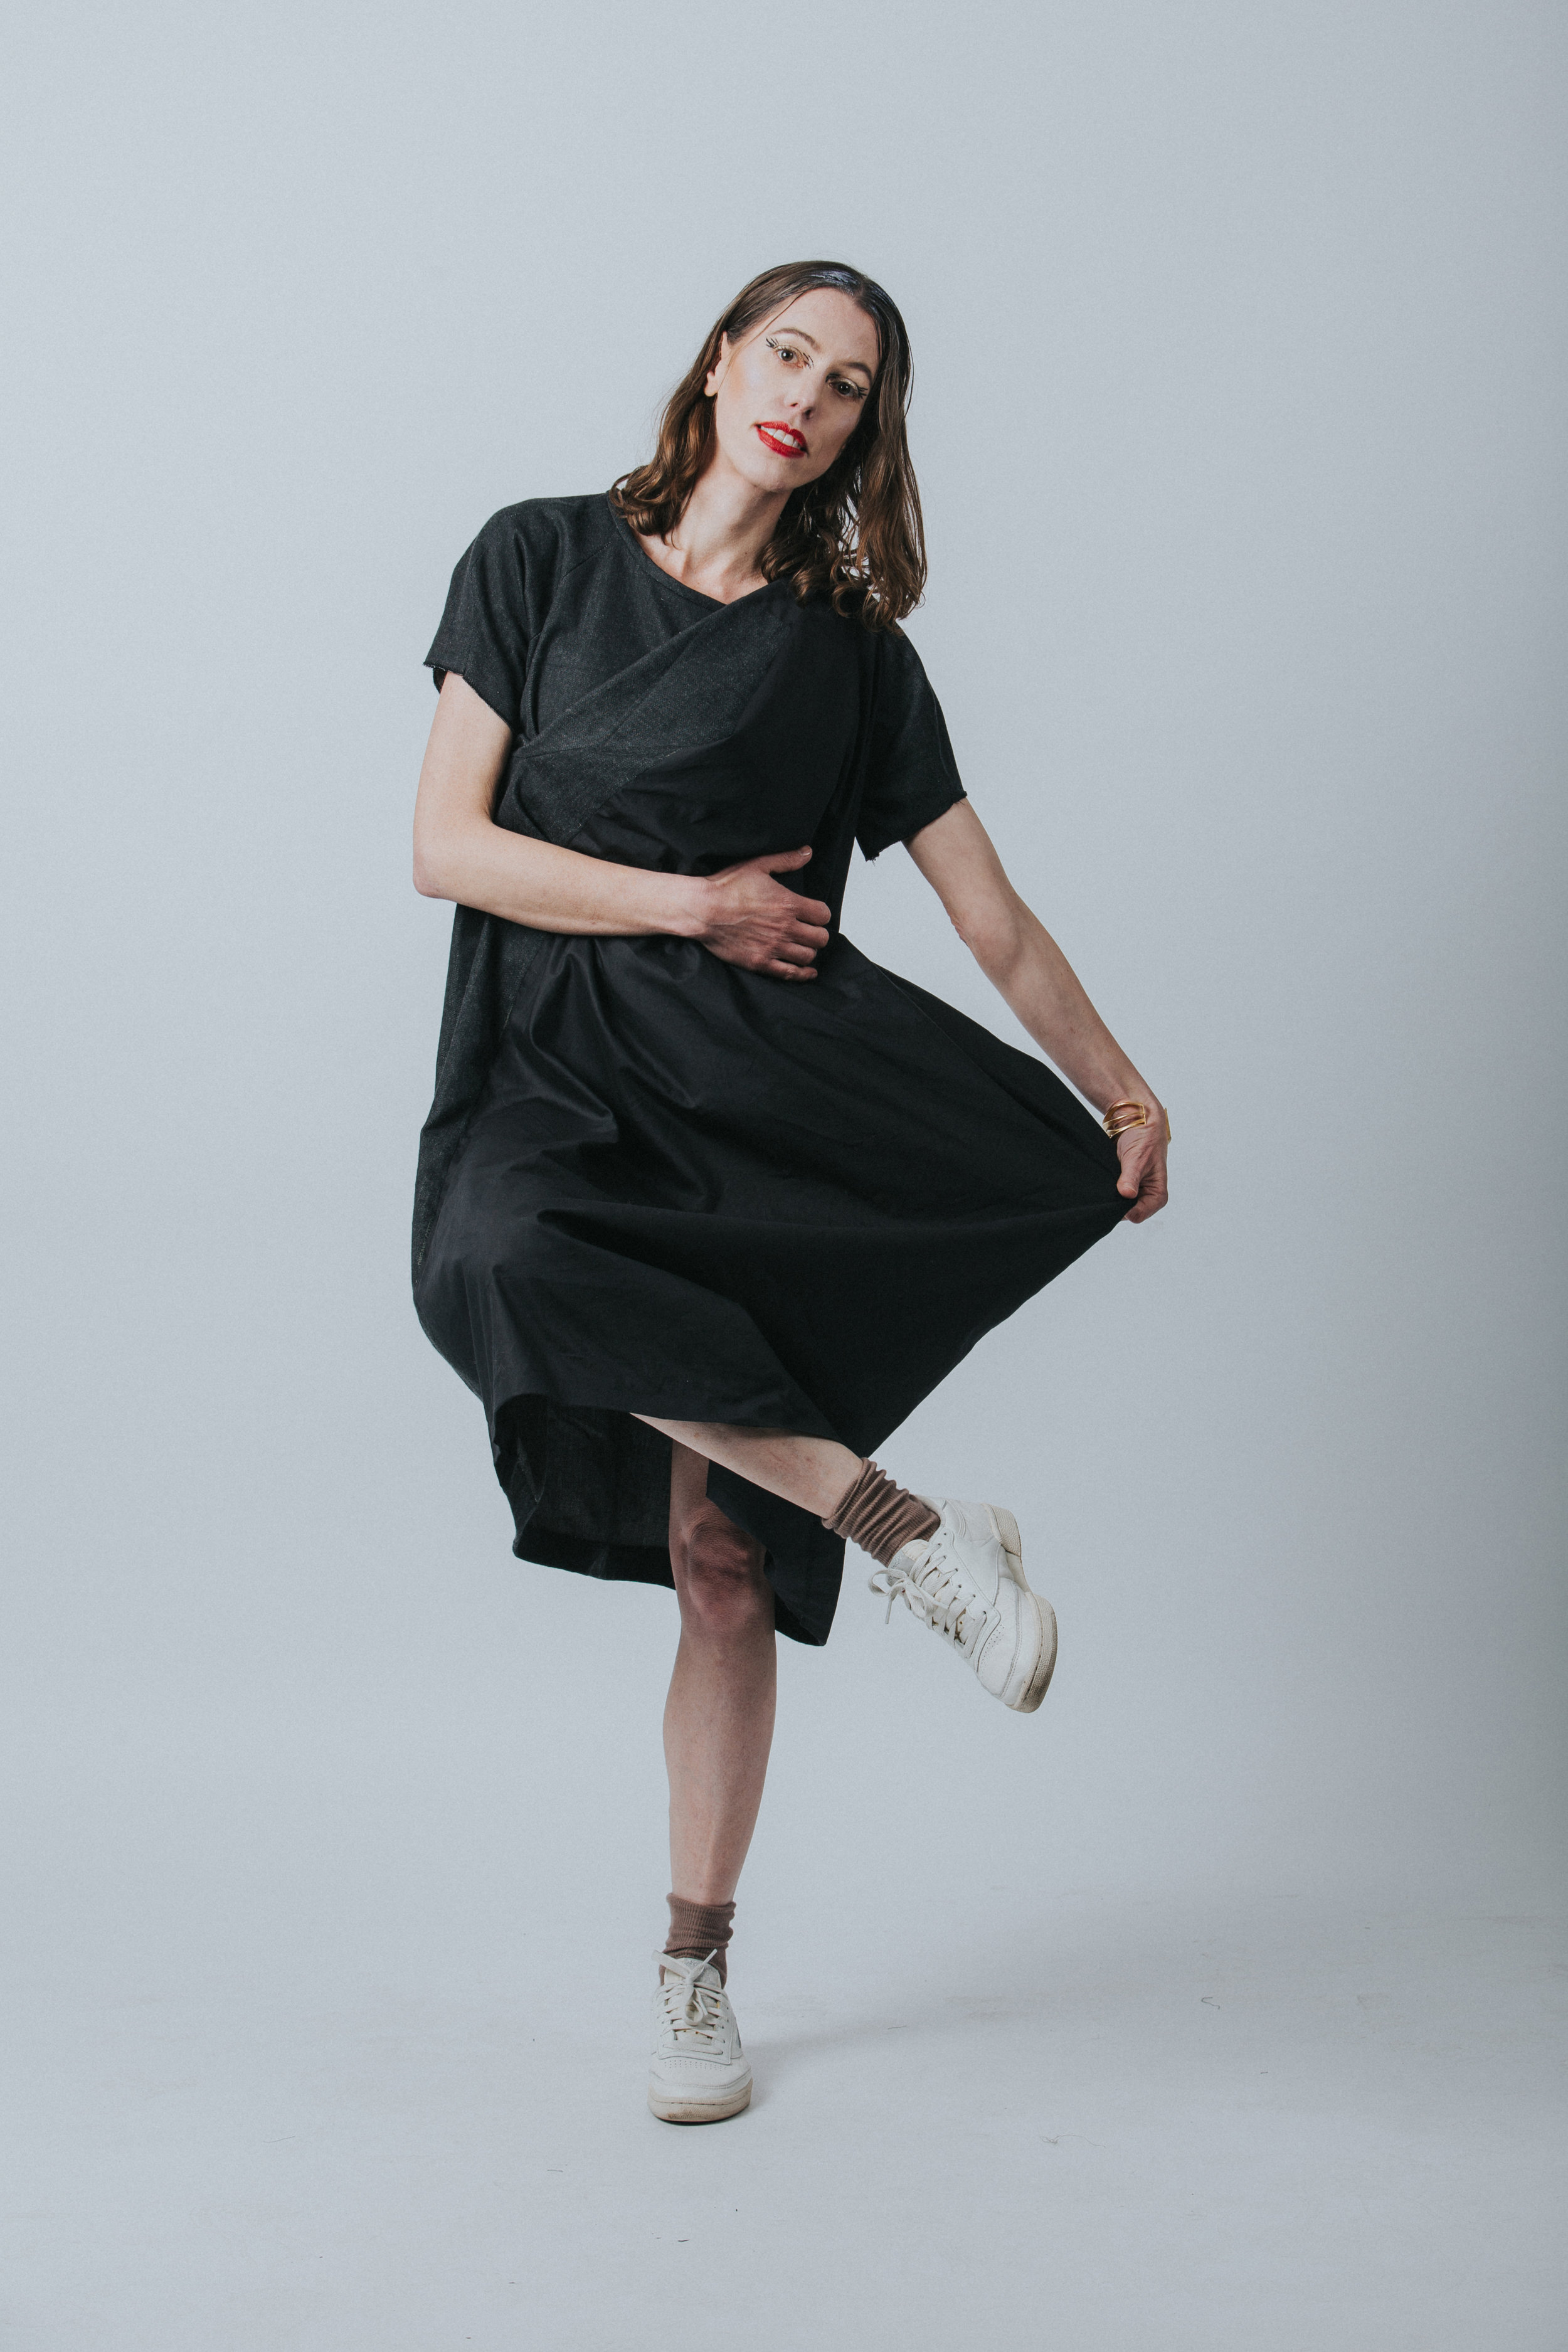 Vanessa Smuts, London. - Vanessa is wearing Anatomic little black reconfigurable 100% organic cotton dress.A little background about you I was born in South Africa in the seventies. I'm fortunate to count myself and my friends among the misfits of society. I have a strong sense of fairness (a typical Libran trait) and have yet to grow out of my teenage existential angst. I cherish the experience gained with age, and continue to search for the meaning of life. I hope some day to do it justice. I'm vegetarian and run to stay fit and remain sane. If there is such a thing as reincarnation, I'd like to return as a poet or a musician.What was your biggest creative influence(s) growing up ?I grew up on a bushveld farm in South Africa. The world beyond was gleaned from pictures of glamorous women posing in the pages of my grandmother's weekly issue of Fair Lady or Cosmopolitan, and fleeting glimpses of big cities like New York on b&w TV where the sidewalks were a sea of human faces bobbing on the tide. It was frightening yet fascinating. I especially wanted to visit Japan one day. Nature has been my greatest inspiration but I also learned that it is